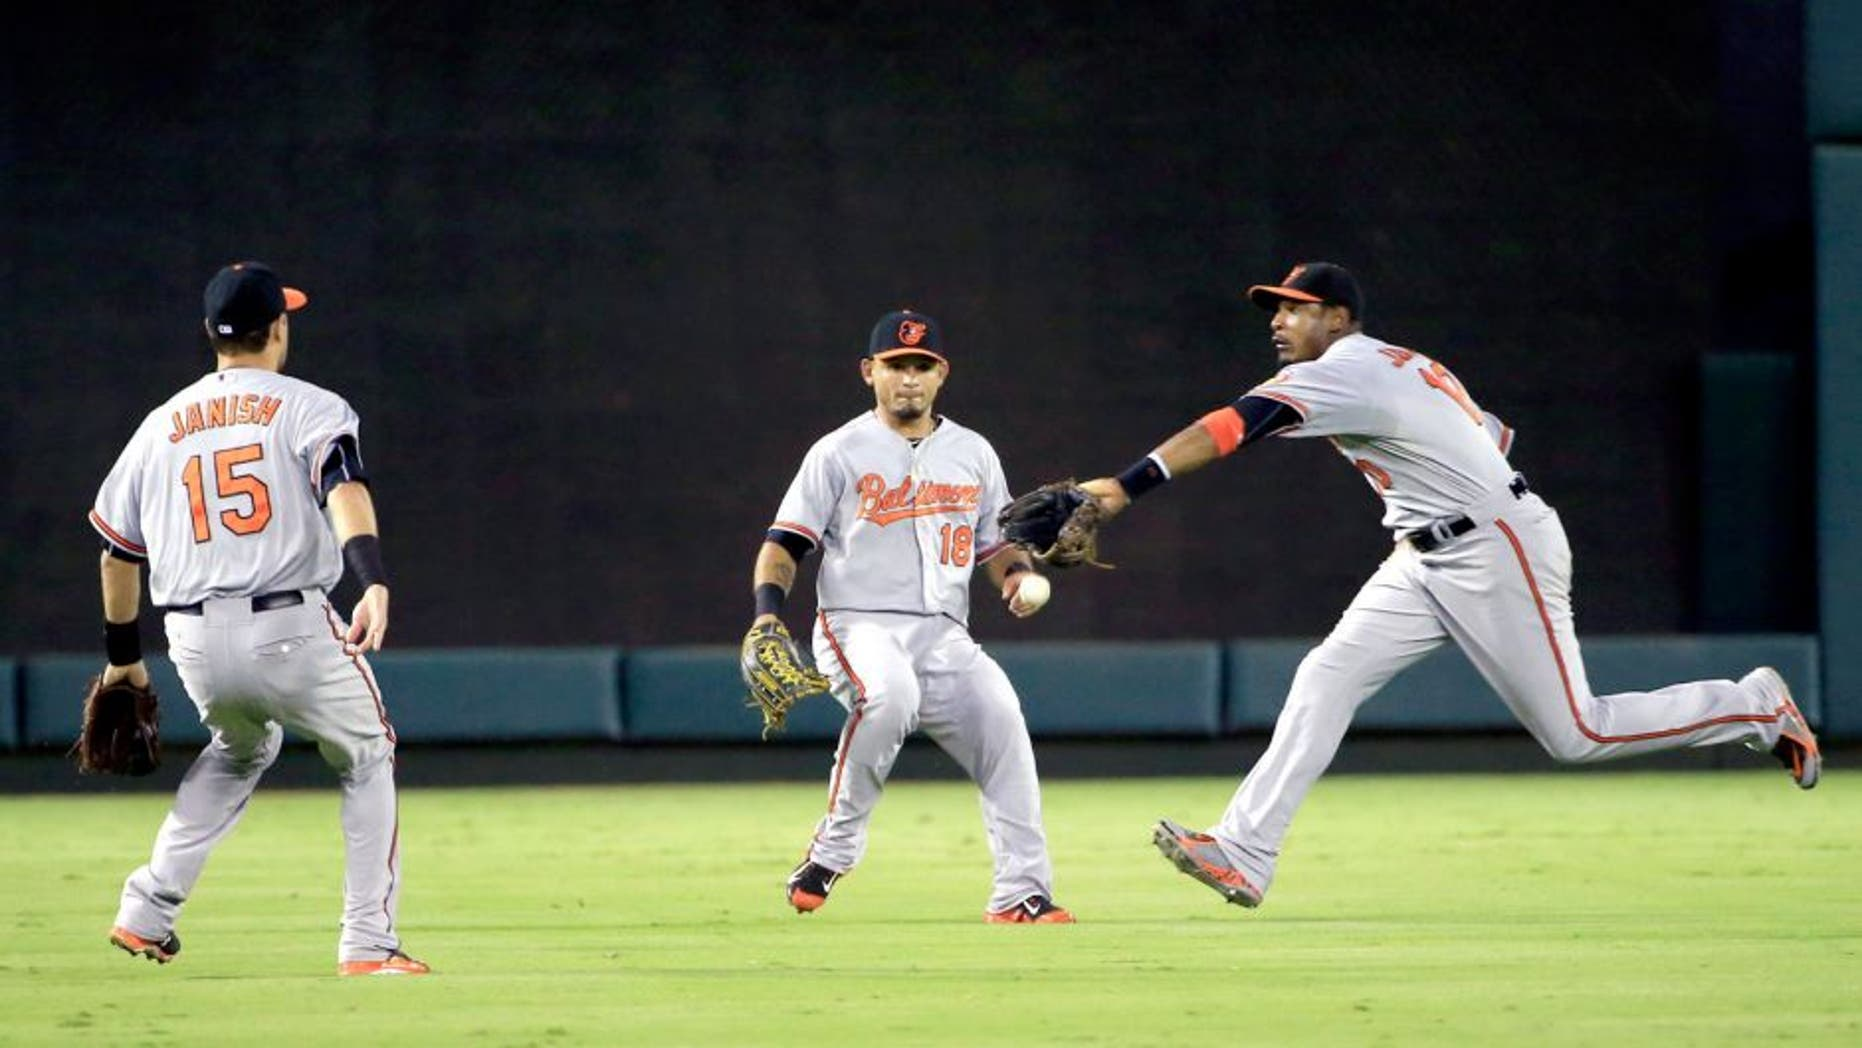 Aug 29, 2015; Arlington, TX, USA; Baltimore Orioles center fielder Adam Jones (10) and left fielder Gerardo Parra (18) and shortstop Paul Janish (15) cannot catch a fly ball during the fourth inning against the Texas Rangers at Globe Life Park in Arlington. Mandatory Credit: Kevin Jairaj-USA TODAY Sports